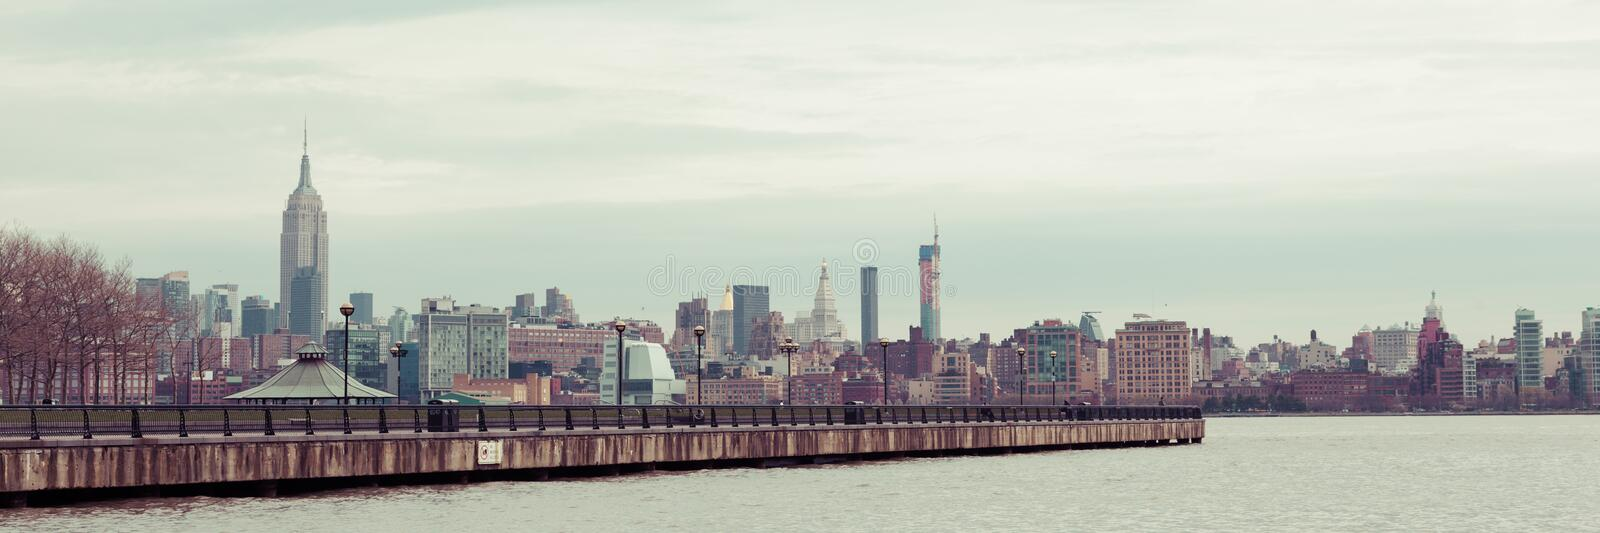 Manhattan Skyline from Hoboken. A view of the Manhattan skyline on a dismal spring day stock images